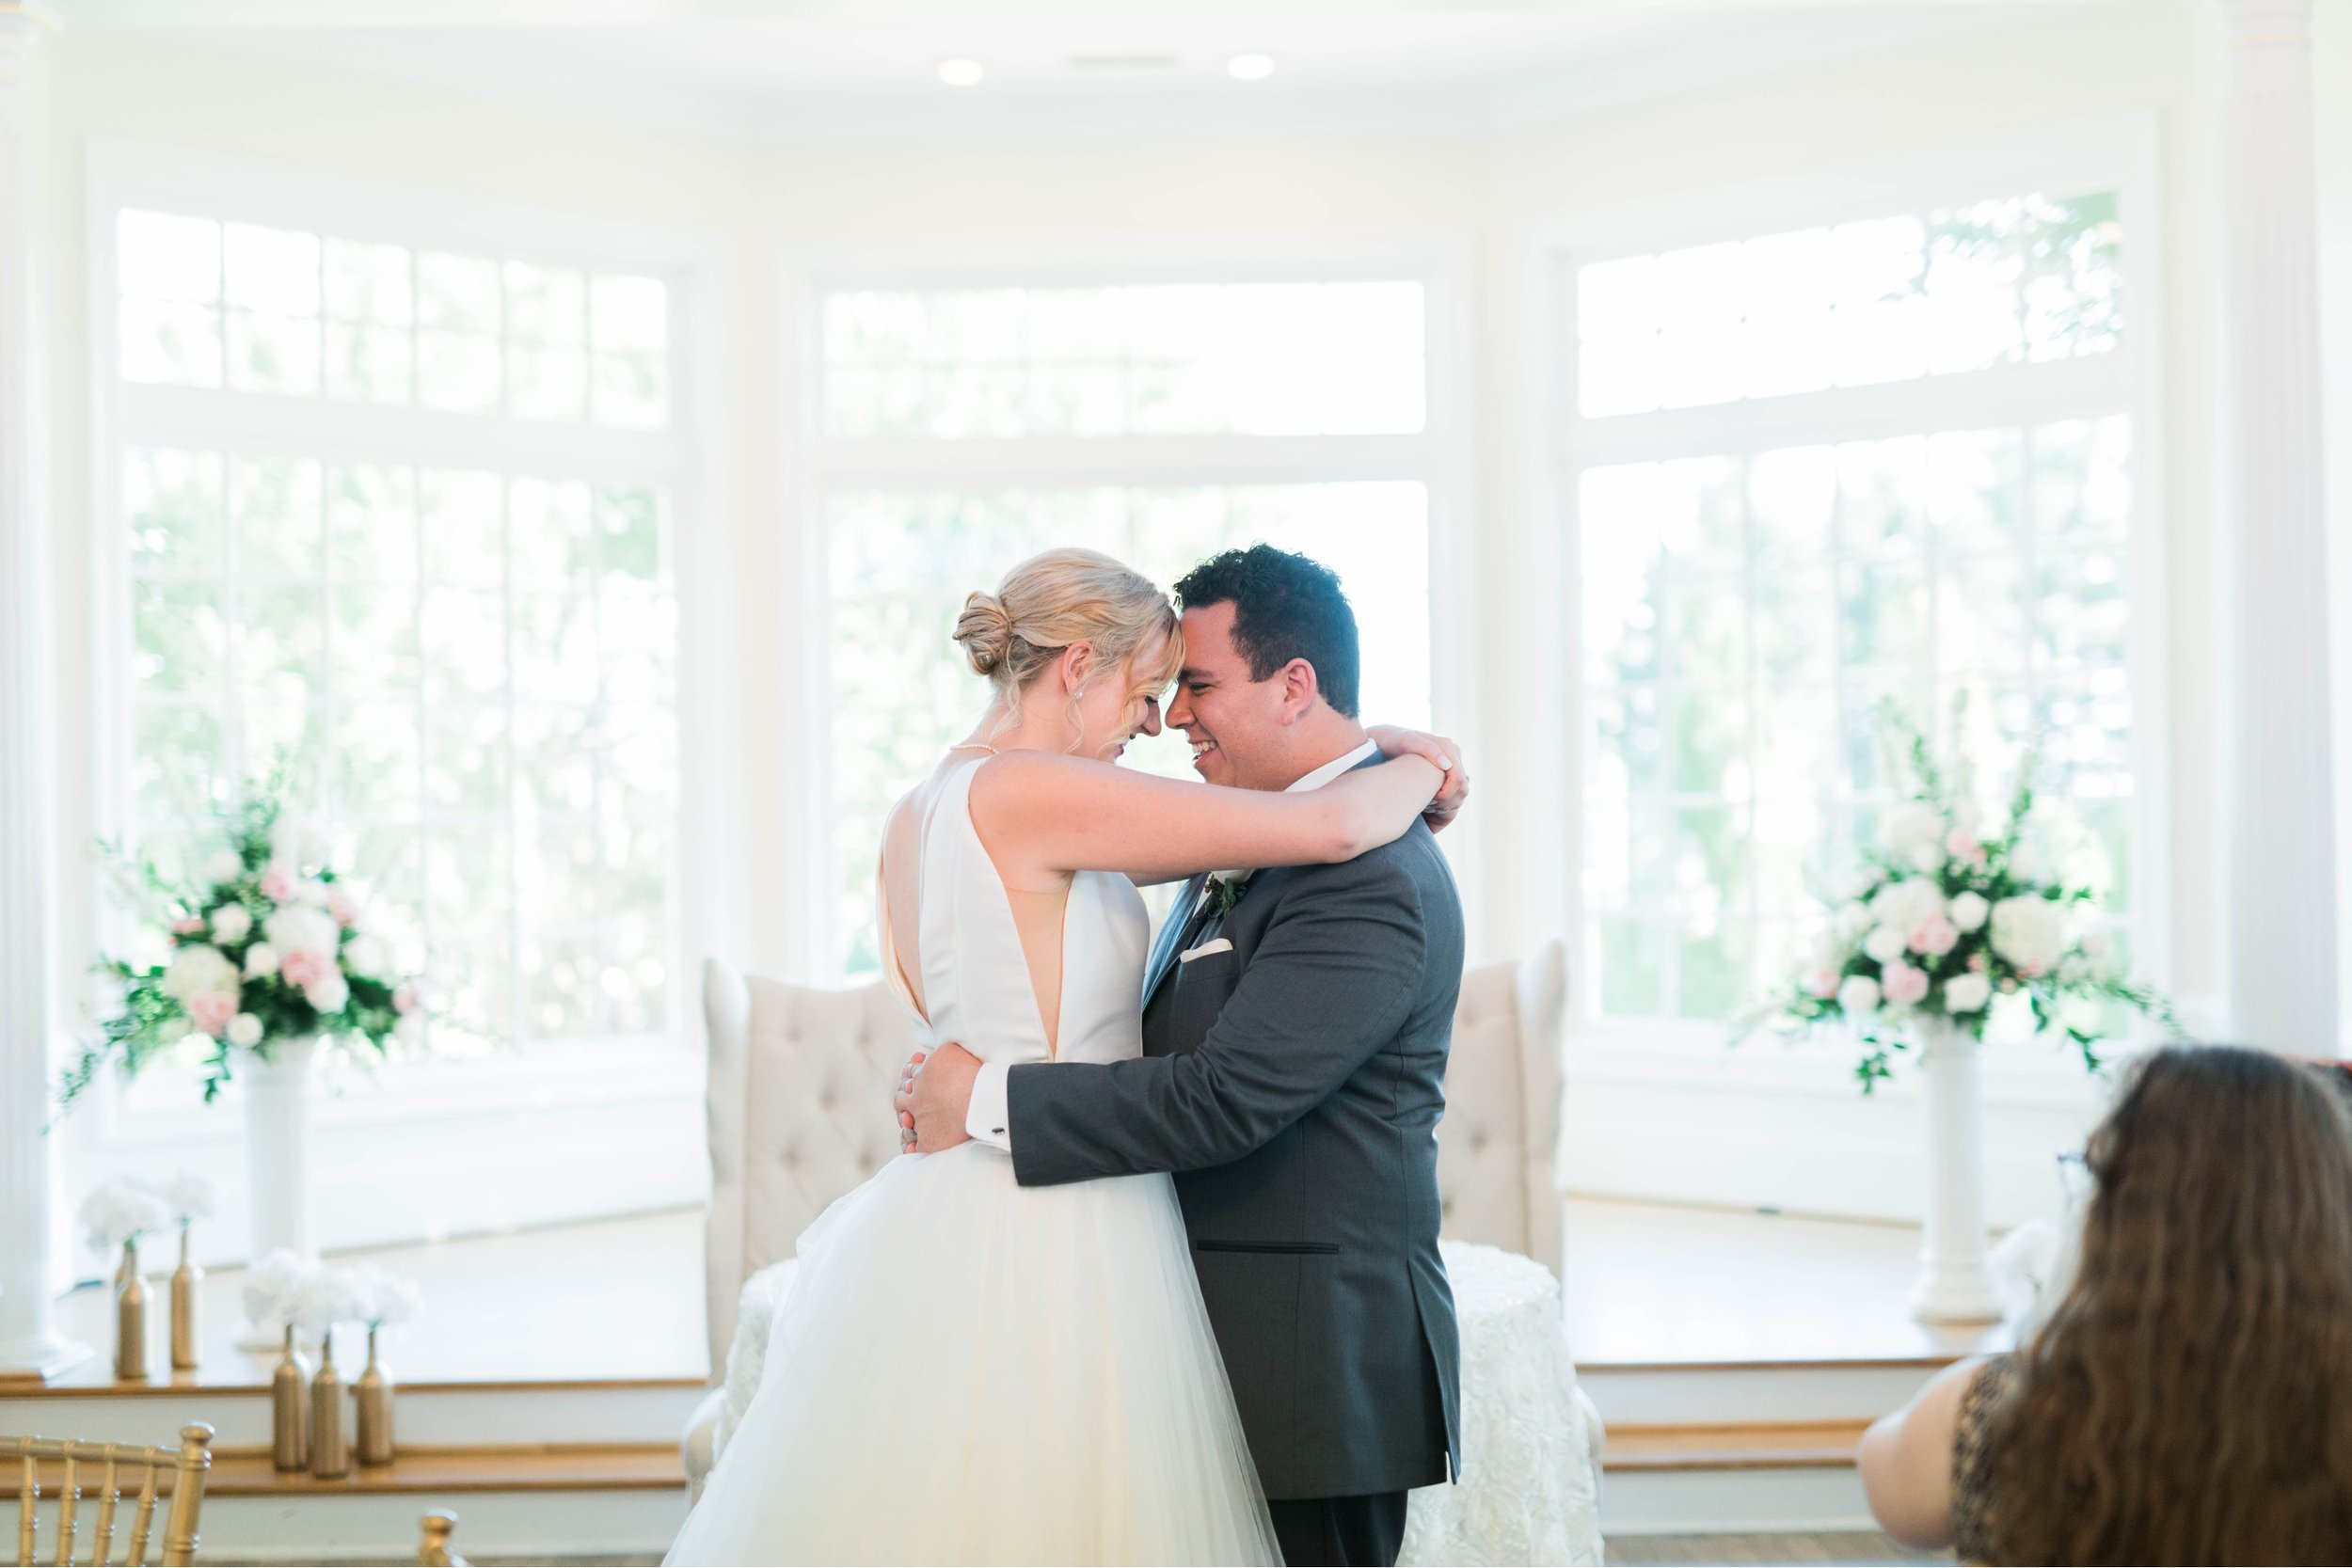 westmanorestate_entwinedevents_lynchburgweddingphotographer_Virginiaweddingphotographer_kateyam 44.jpg